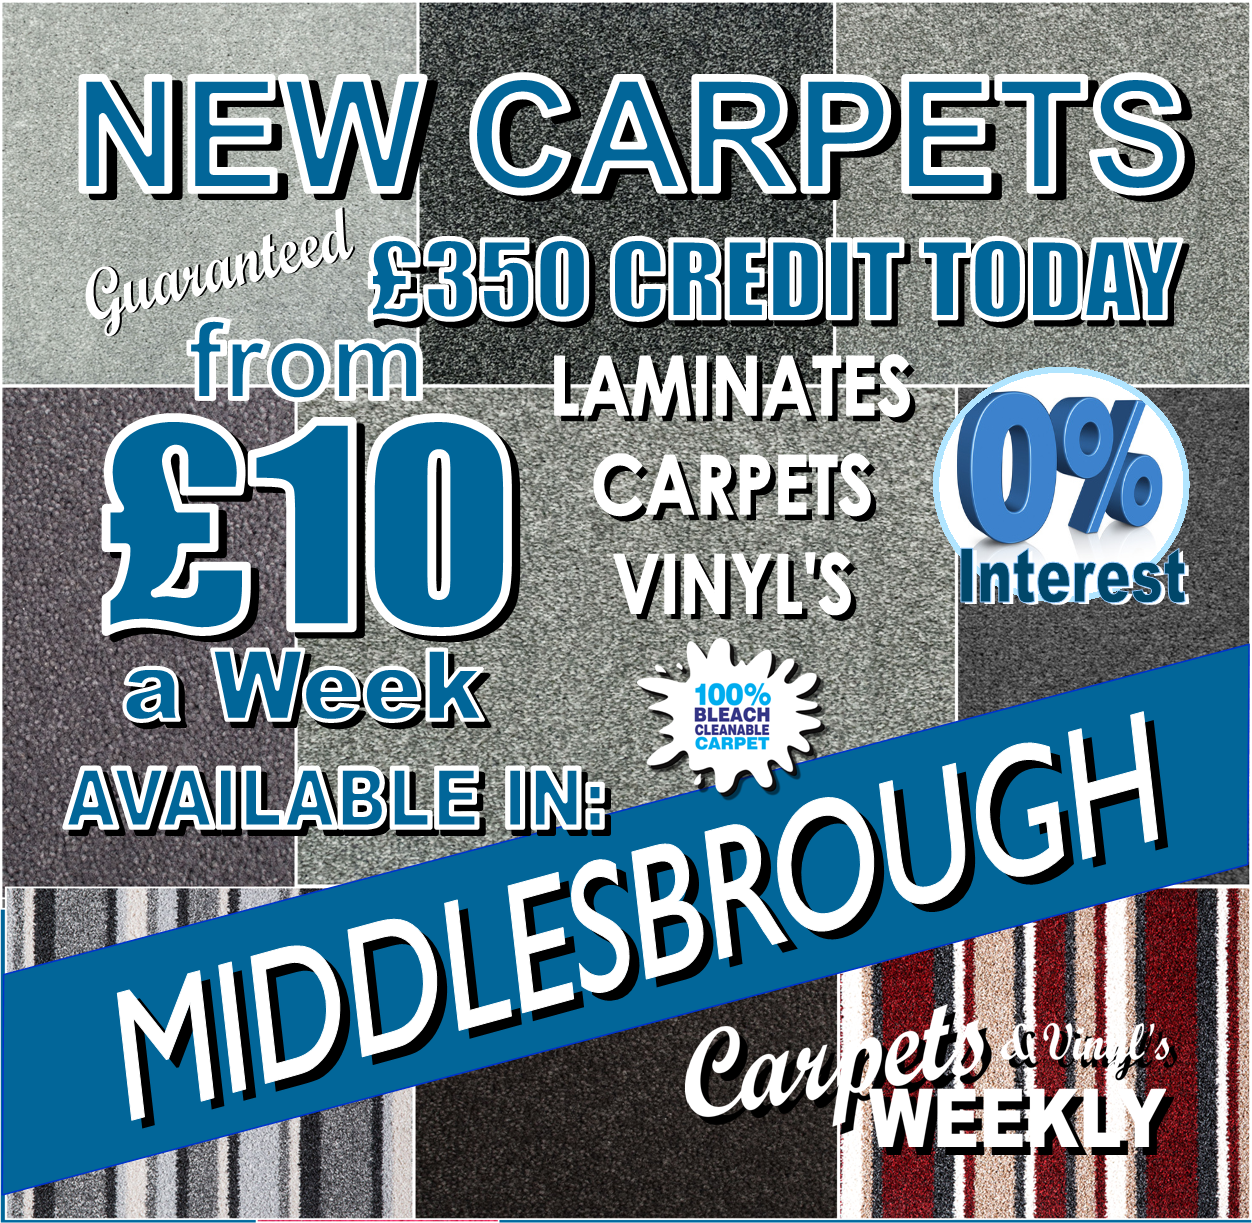 Carpets Weekly Middlesbrough